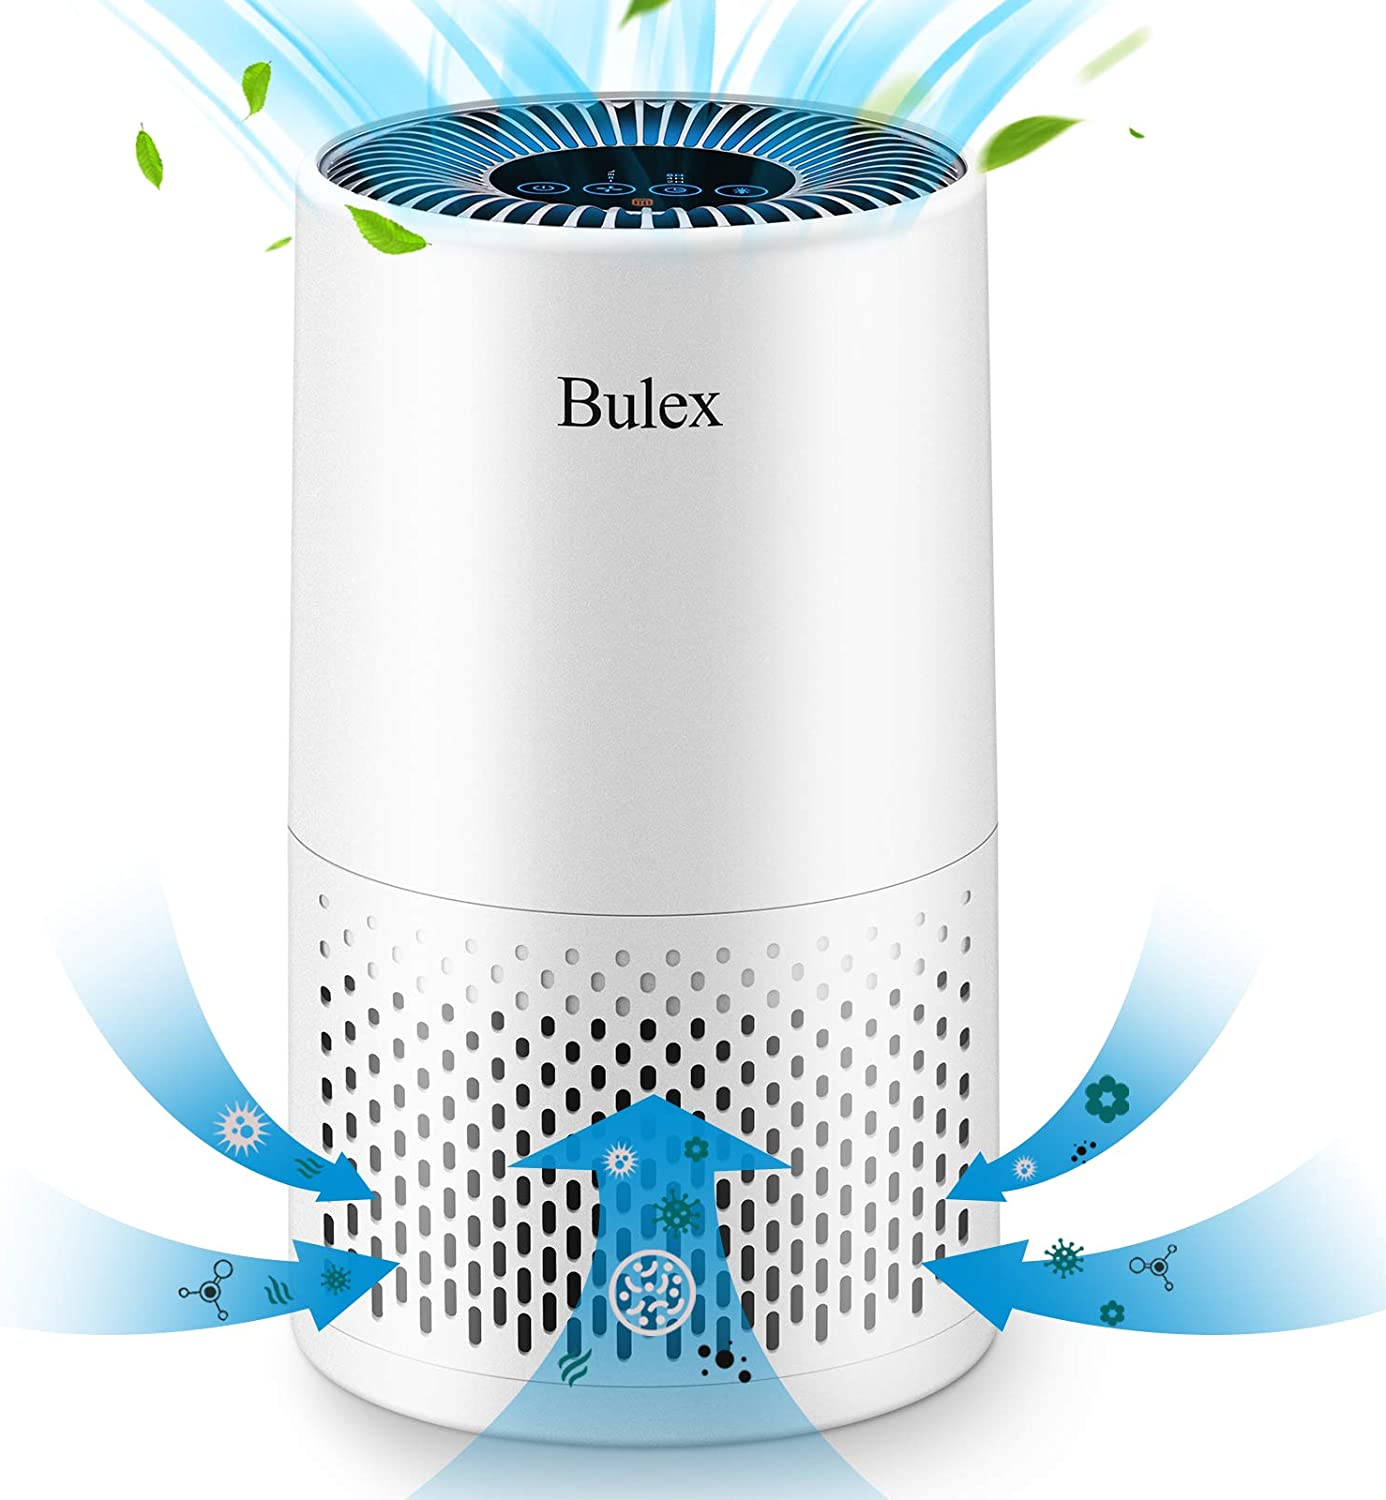 Bulex HEPA Air Purifier Air Purifier with True HEPA Filter,99.97% Purification 4-Stage Filtration & Timing Function & Sleep Mode & Night Light, Remove Smoke Dust Mold Pollen, for Home Bedroom Office